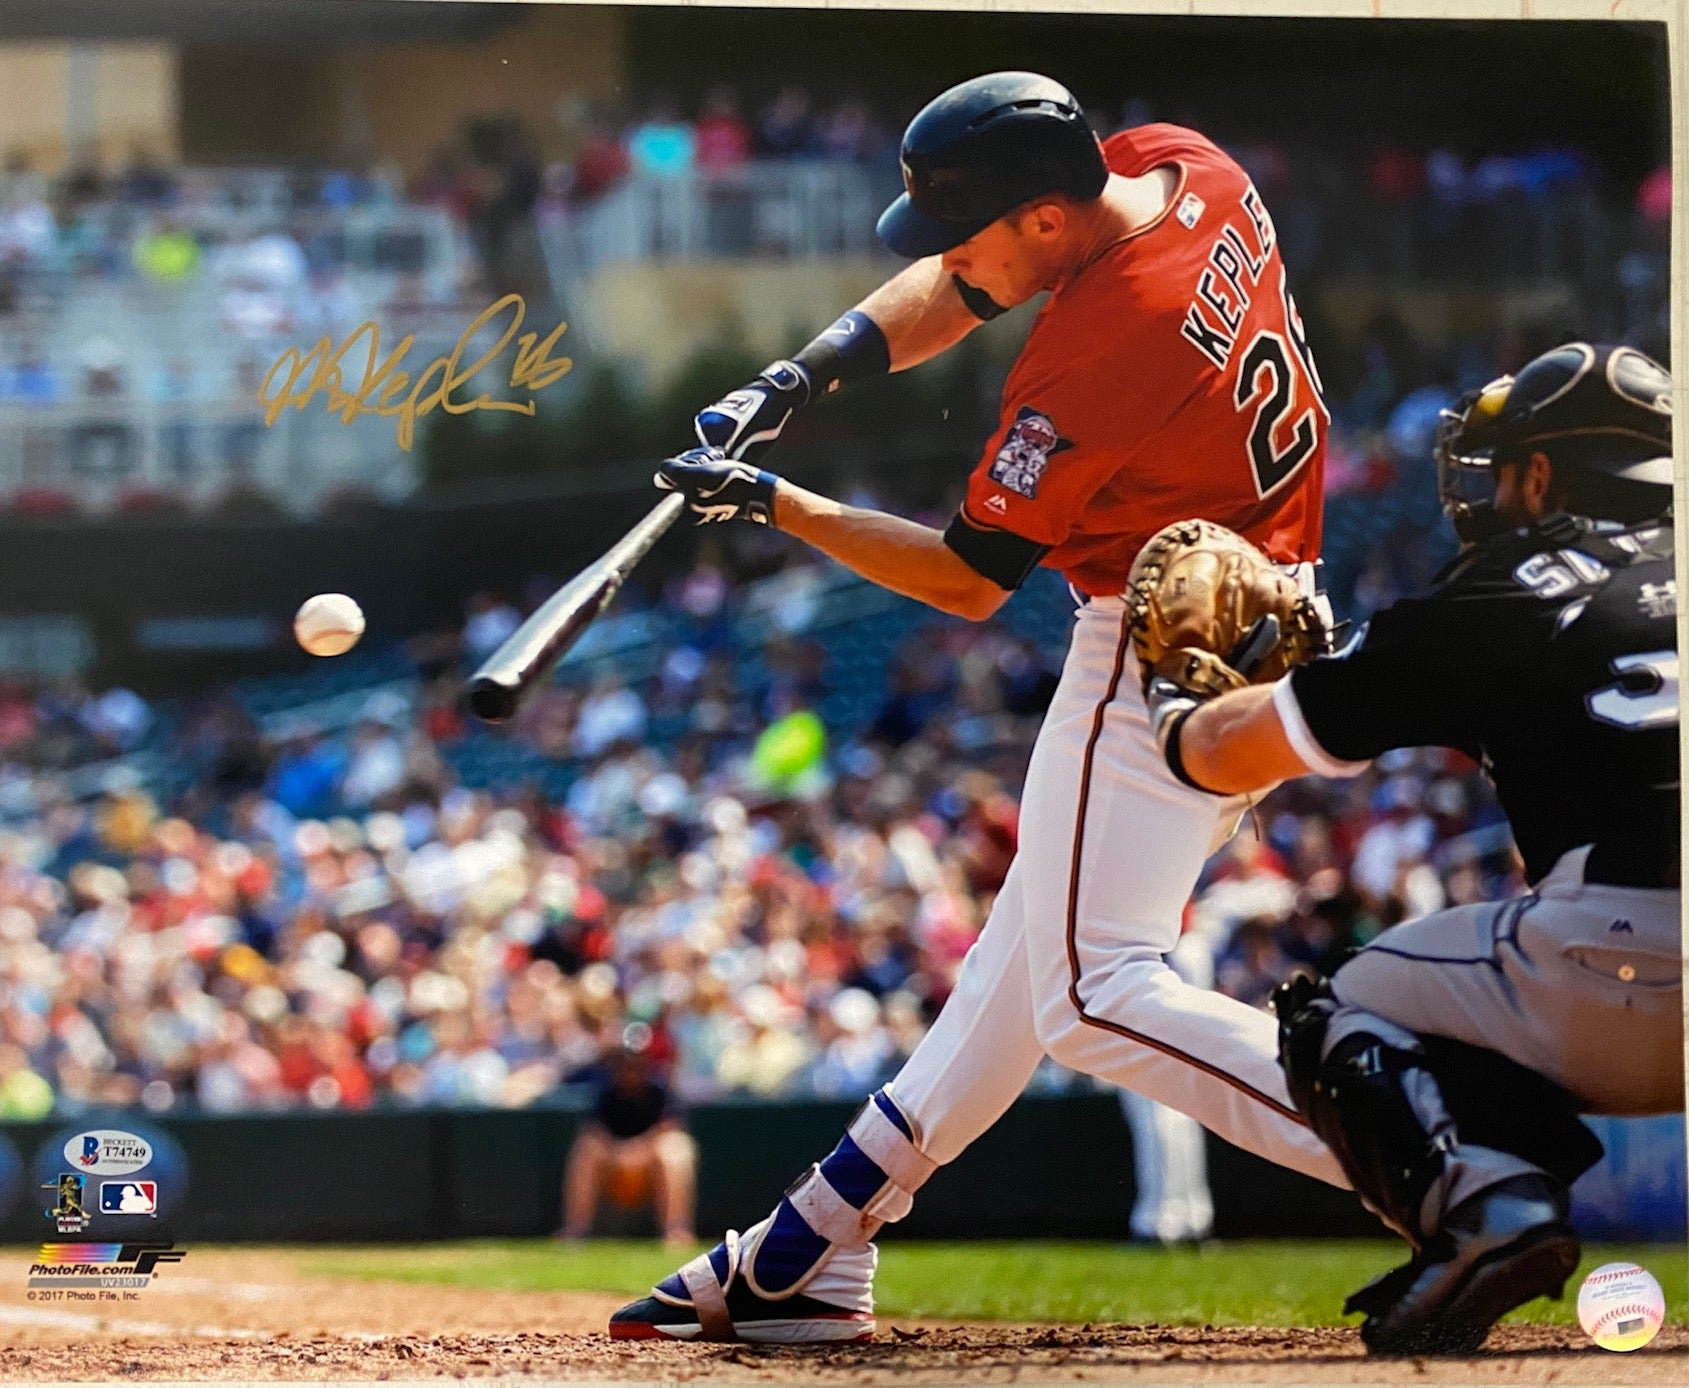 Max Kepler Signed Batting Red Jersey 16x20 Photo